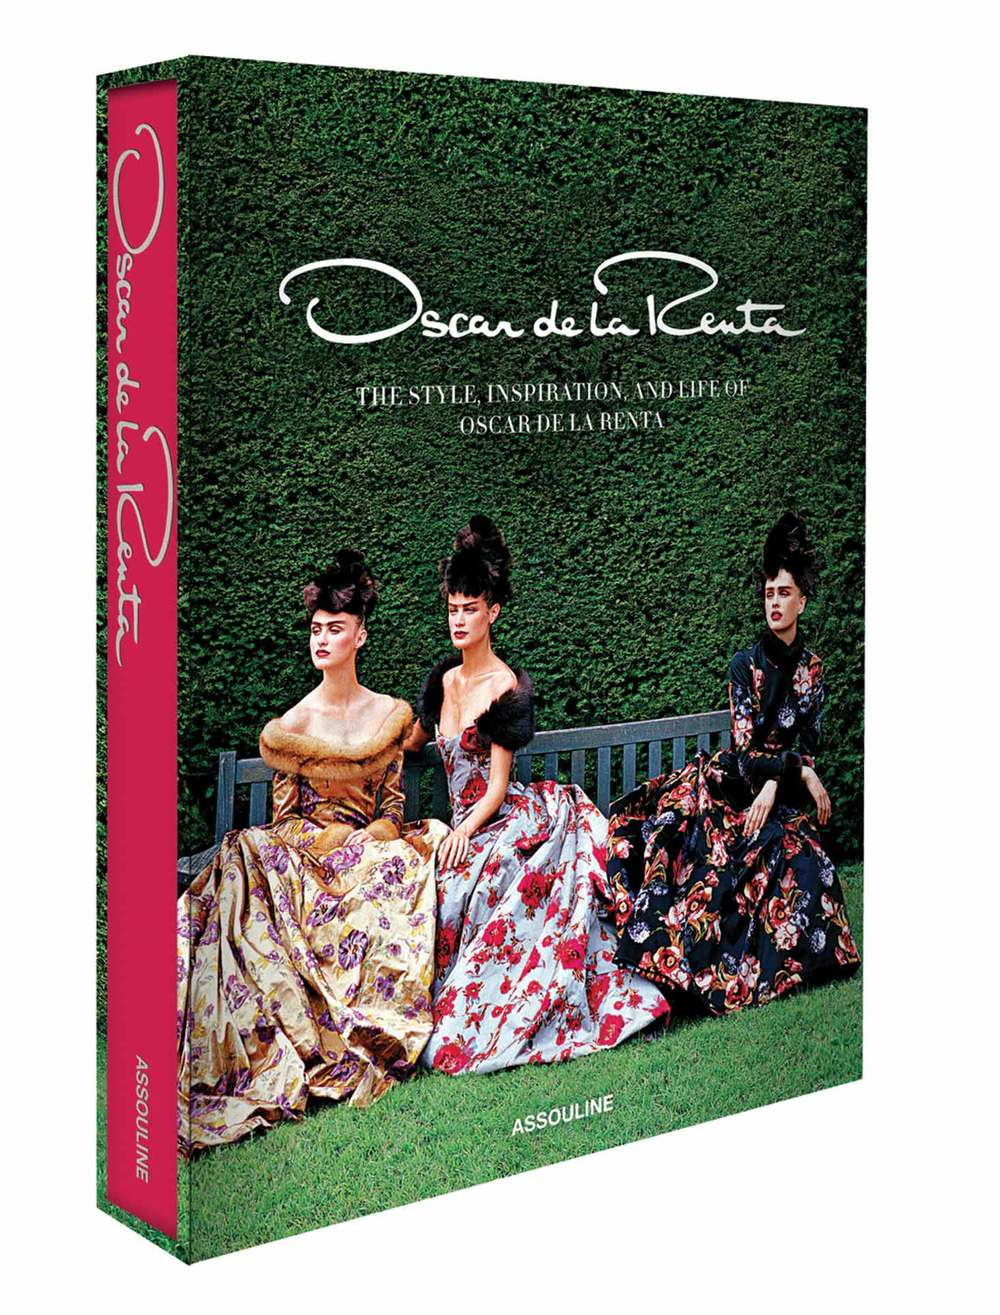 50 years in the making: The Style, Inspiration, and Life of Oscar de la Renta, published by Assouline, $125, assouline.com